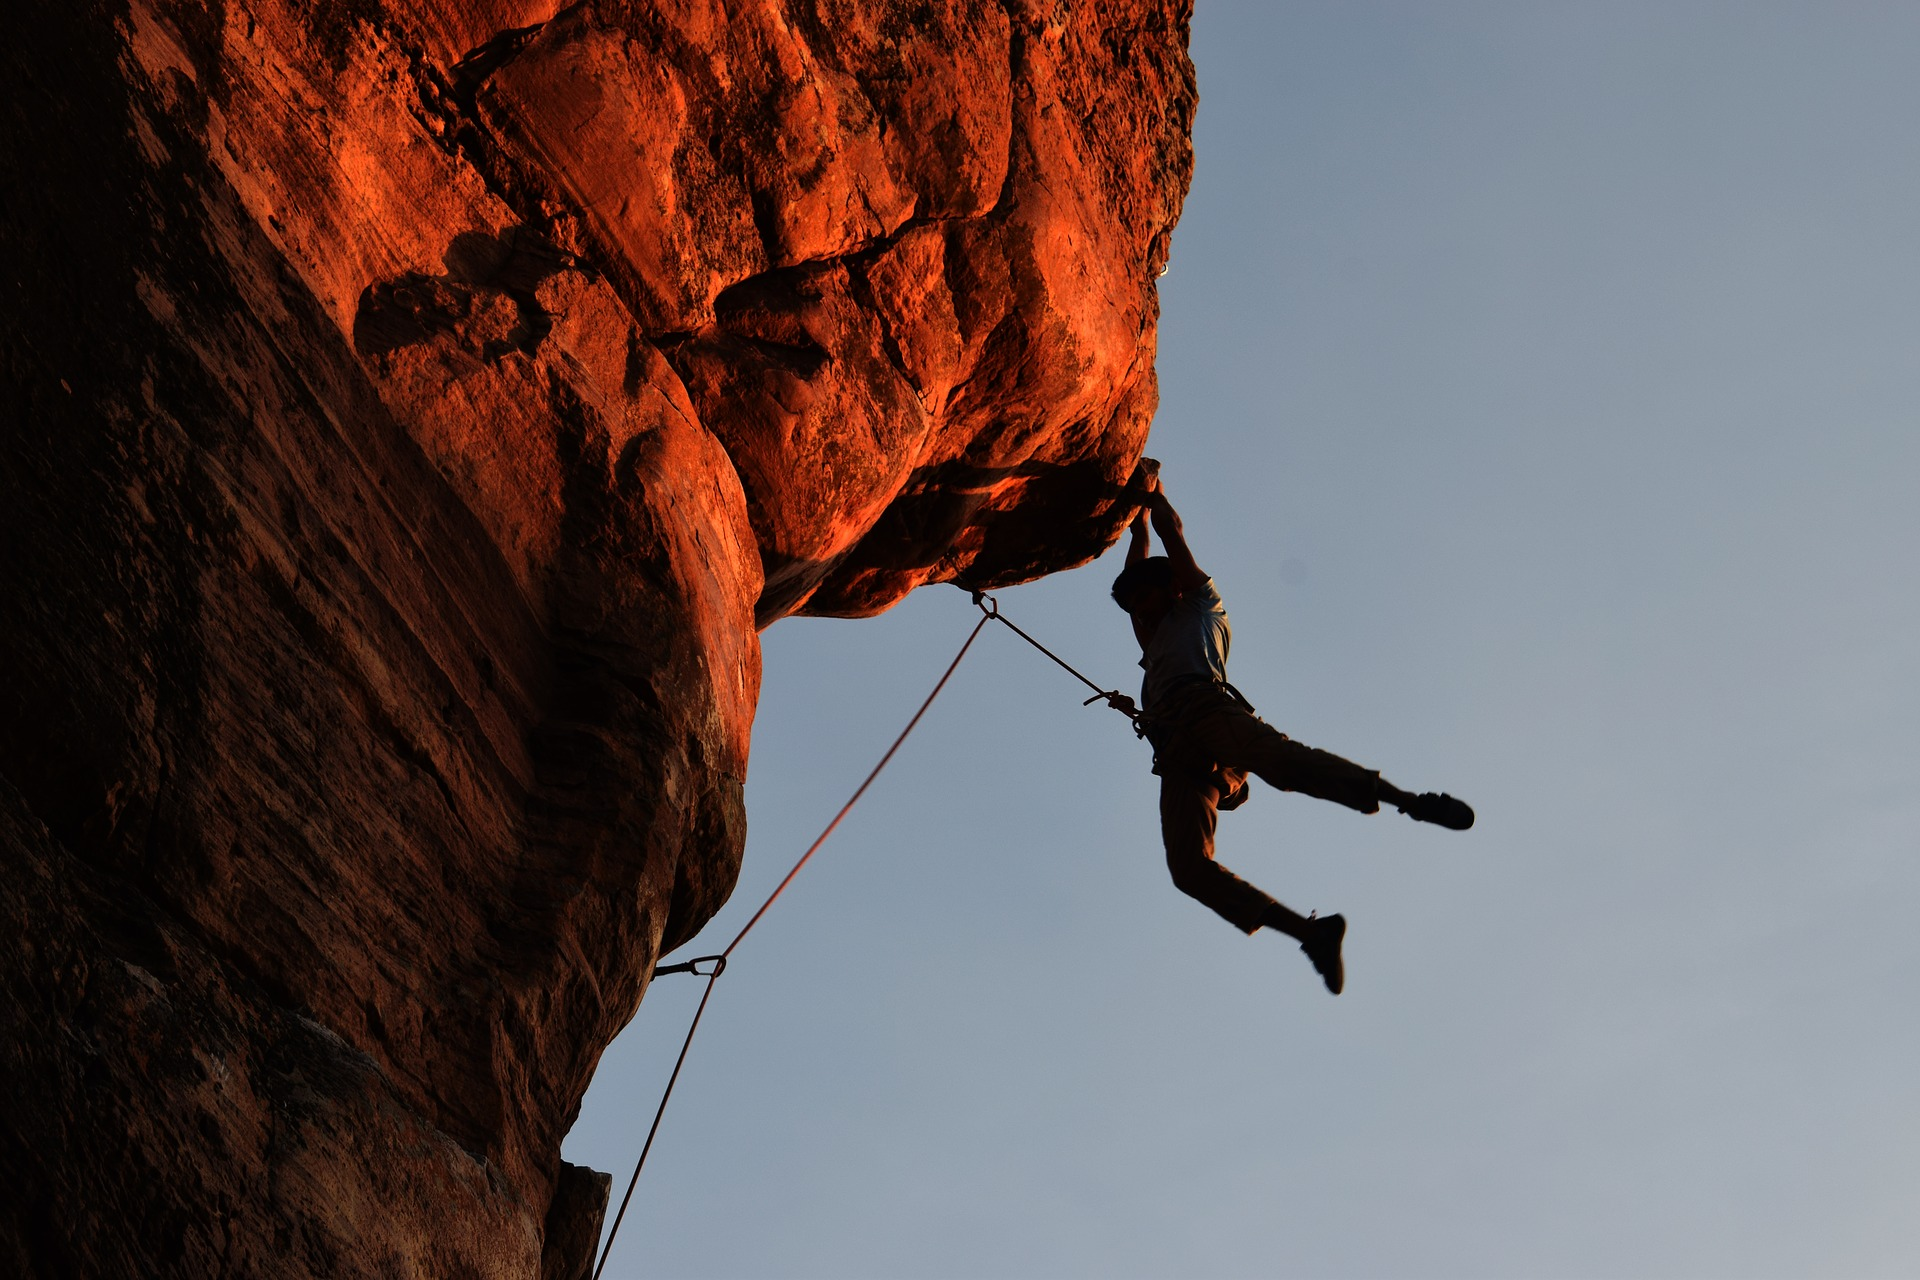 Climbing Hand Pain & Cramps from Climbing: Solution